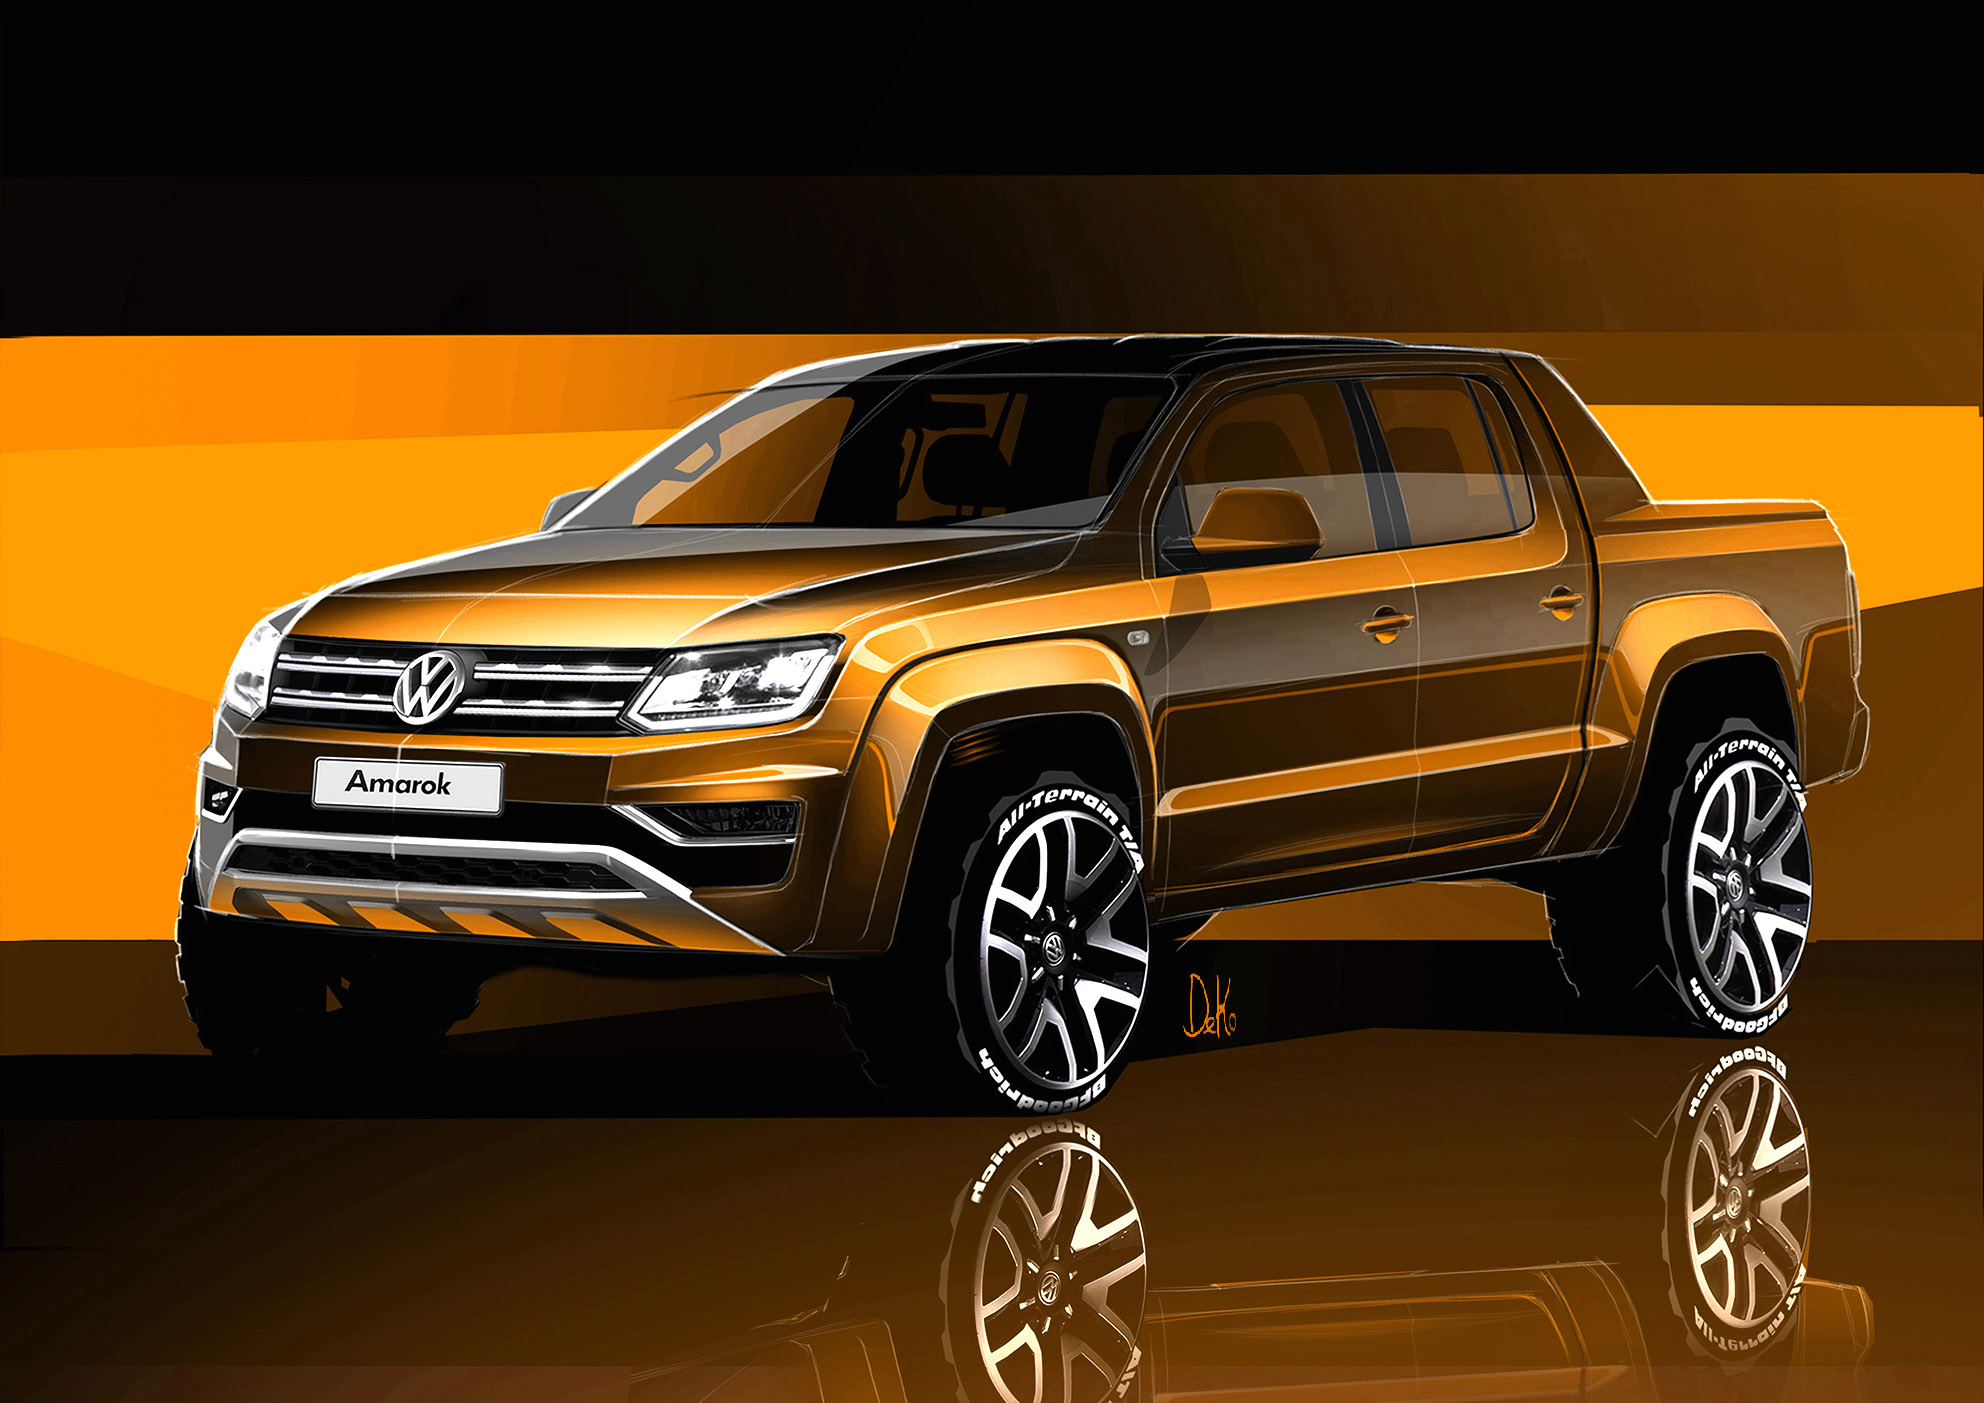 Vw Amarok Modified >> Volkswagen First Teaser Sketches of Amarok